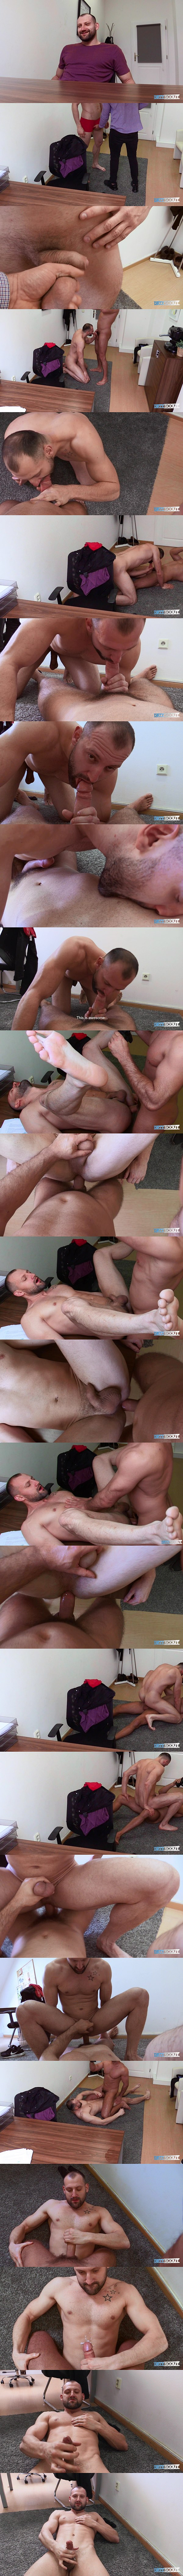 Tall, masculine straight muscle hunk Pavel Sora gets his tight virgin ass popped raw in a POV scene in his bottoming debut in Dirty Scout 233 at Bigstr 01